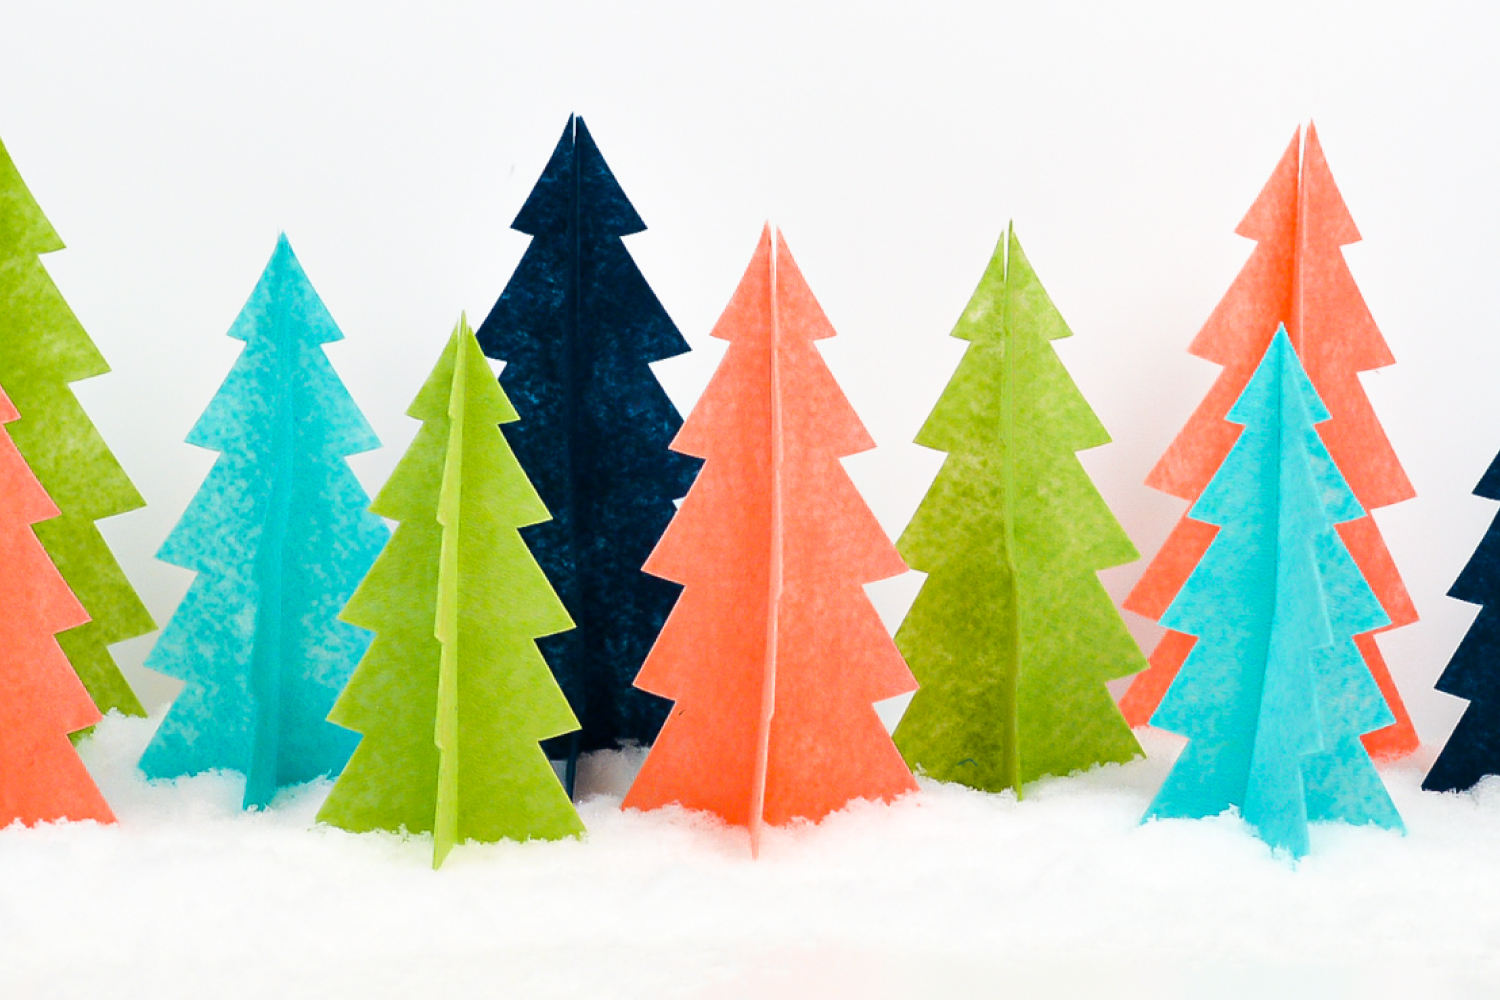 Felt-Christmas-Tree-Cricut-WIDE-750-x-500